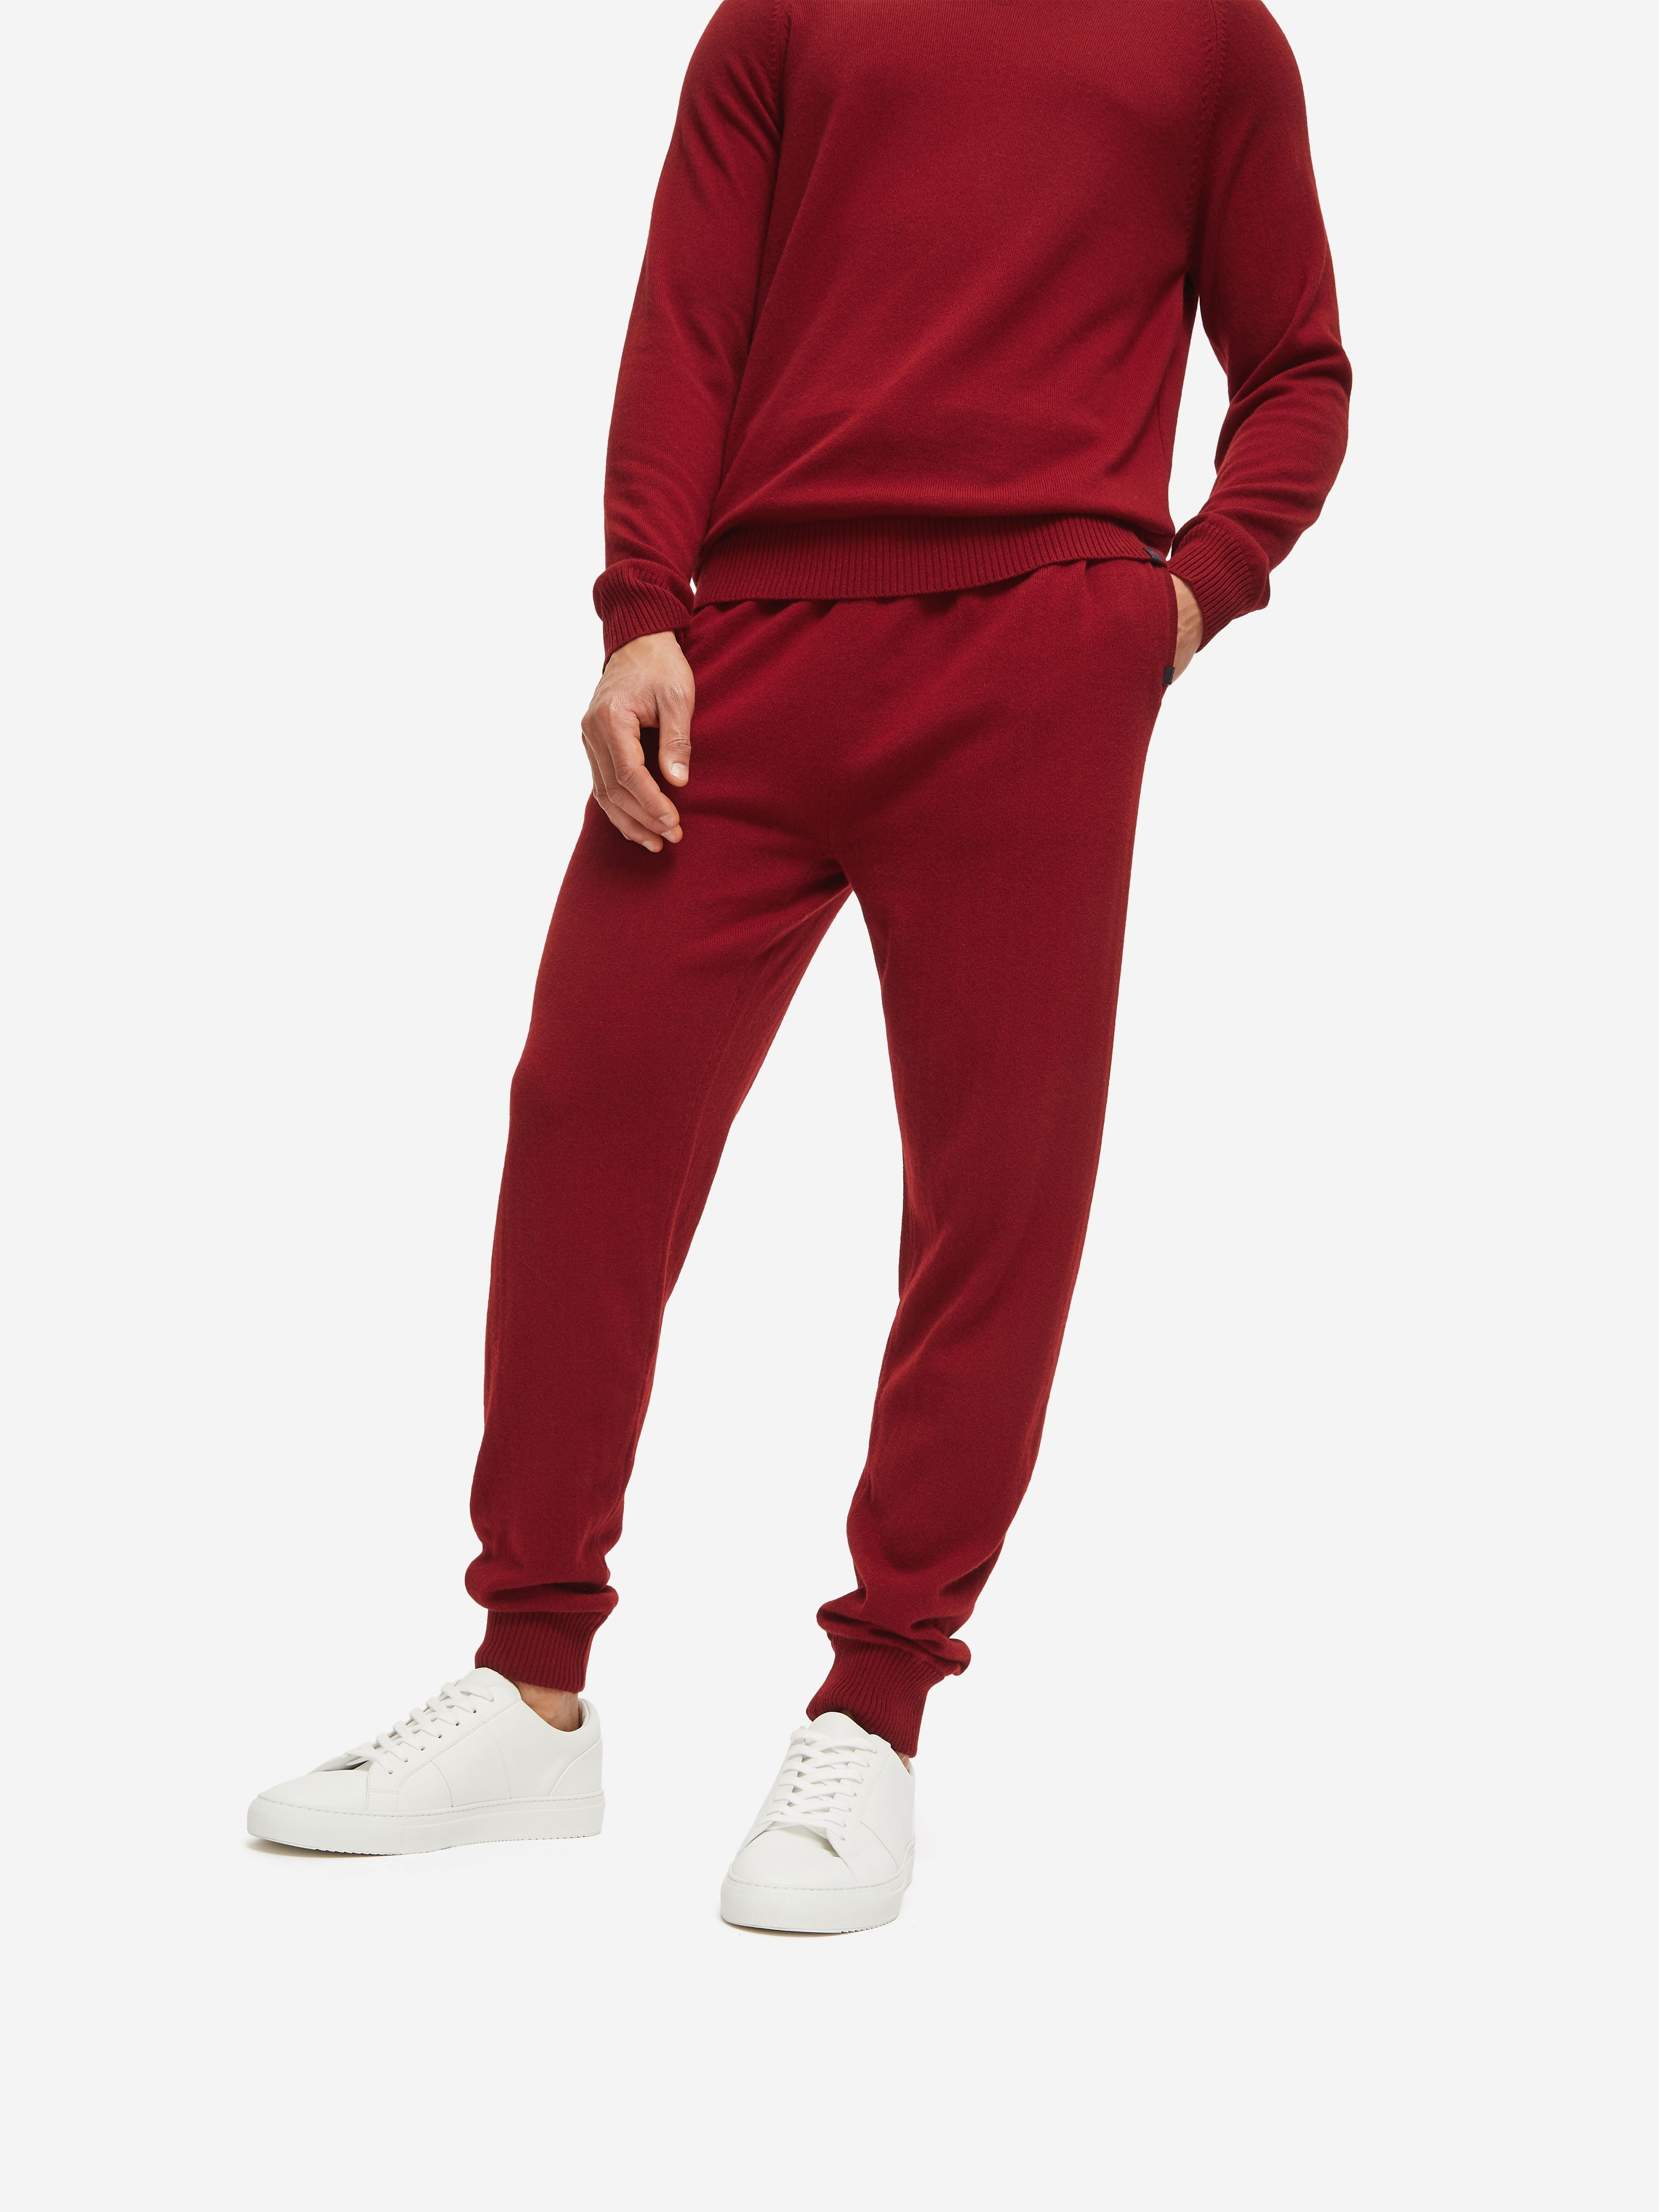 Men's Track Pants Finley Cashmere Red